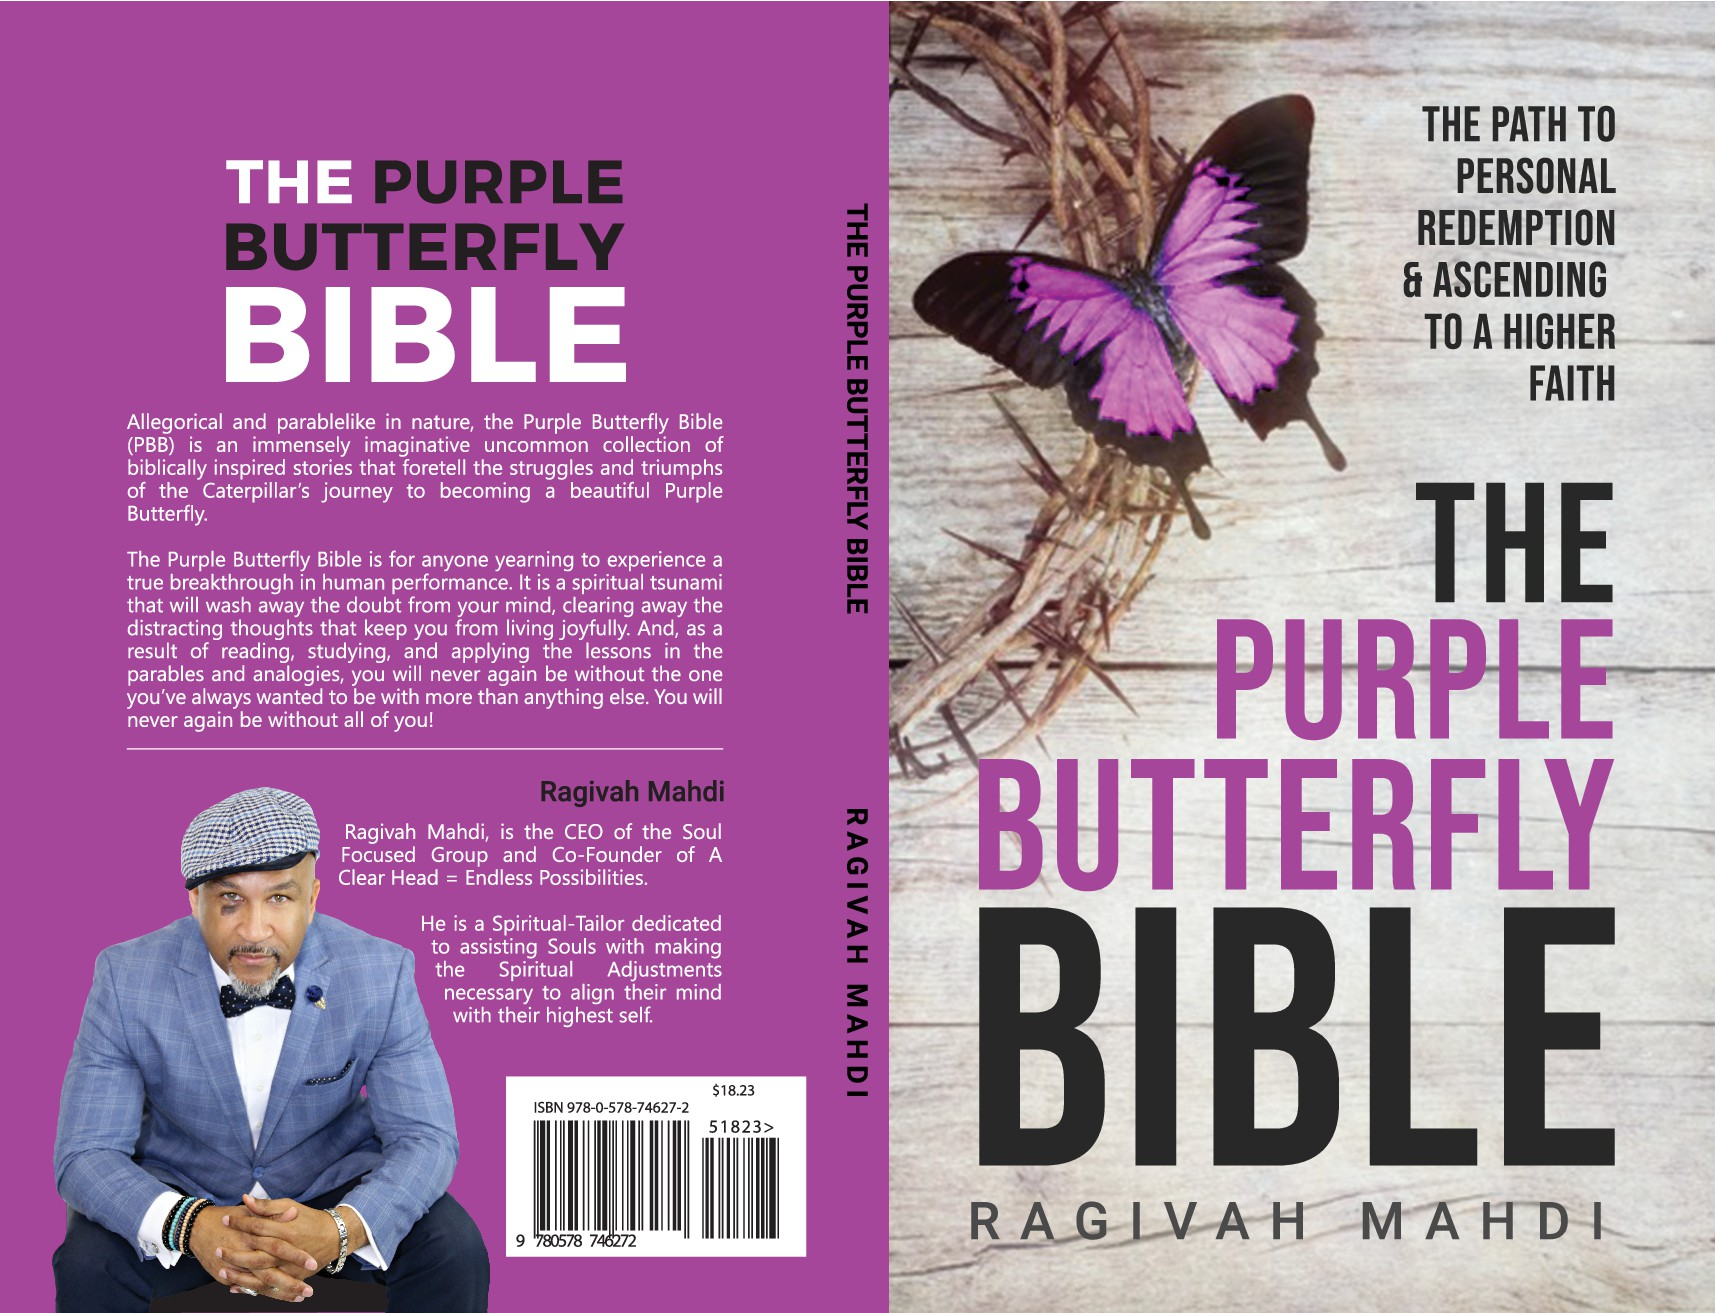 The Purple Butterfly Bible; The Path to Personal Redemption